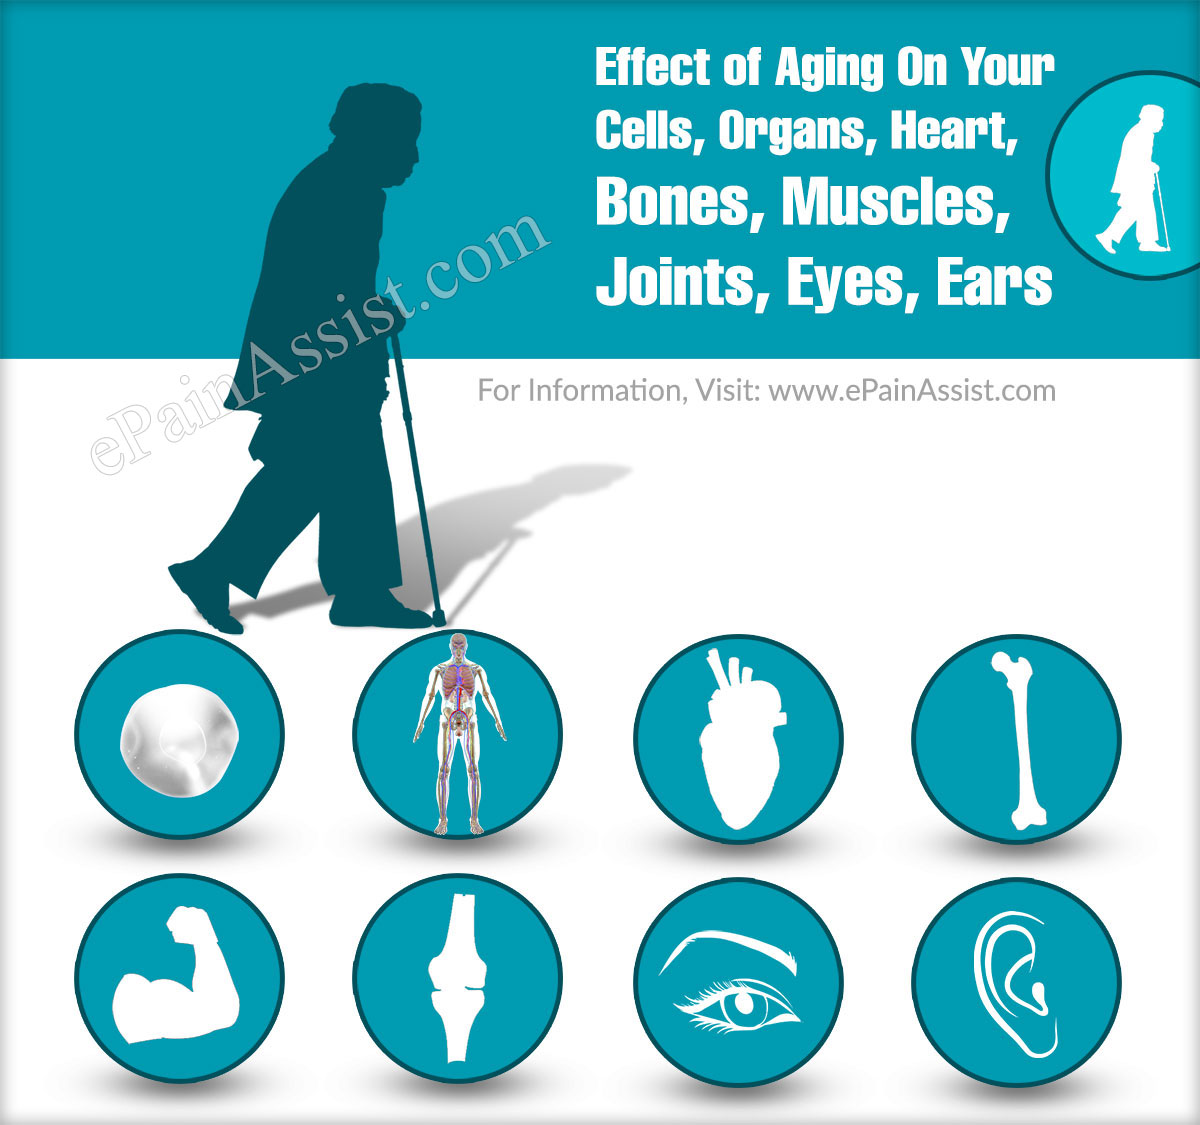 Effect of Aging On Your Cells, Organs, Heart, Bones, Muscles, Joints, Eyes, Ears